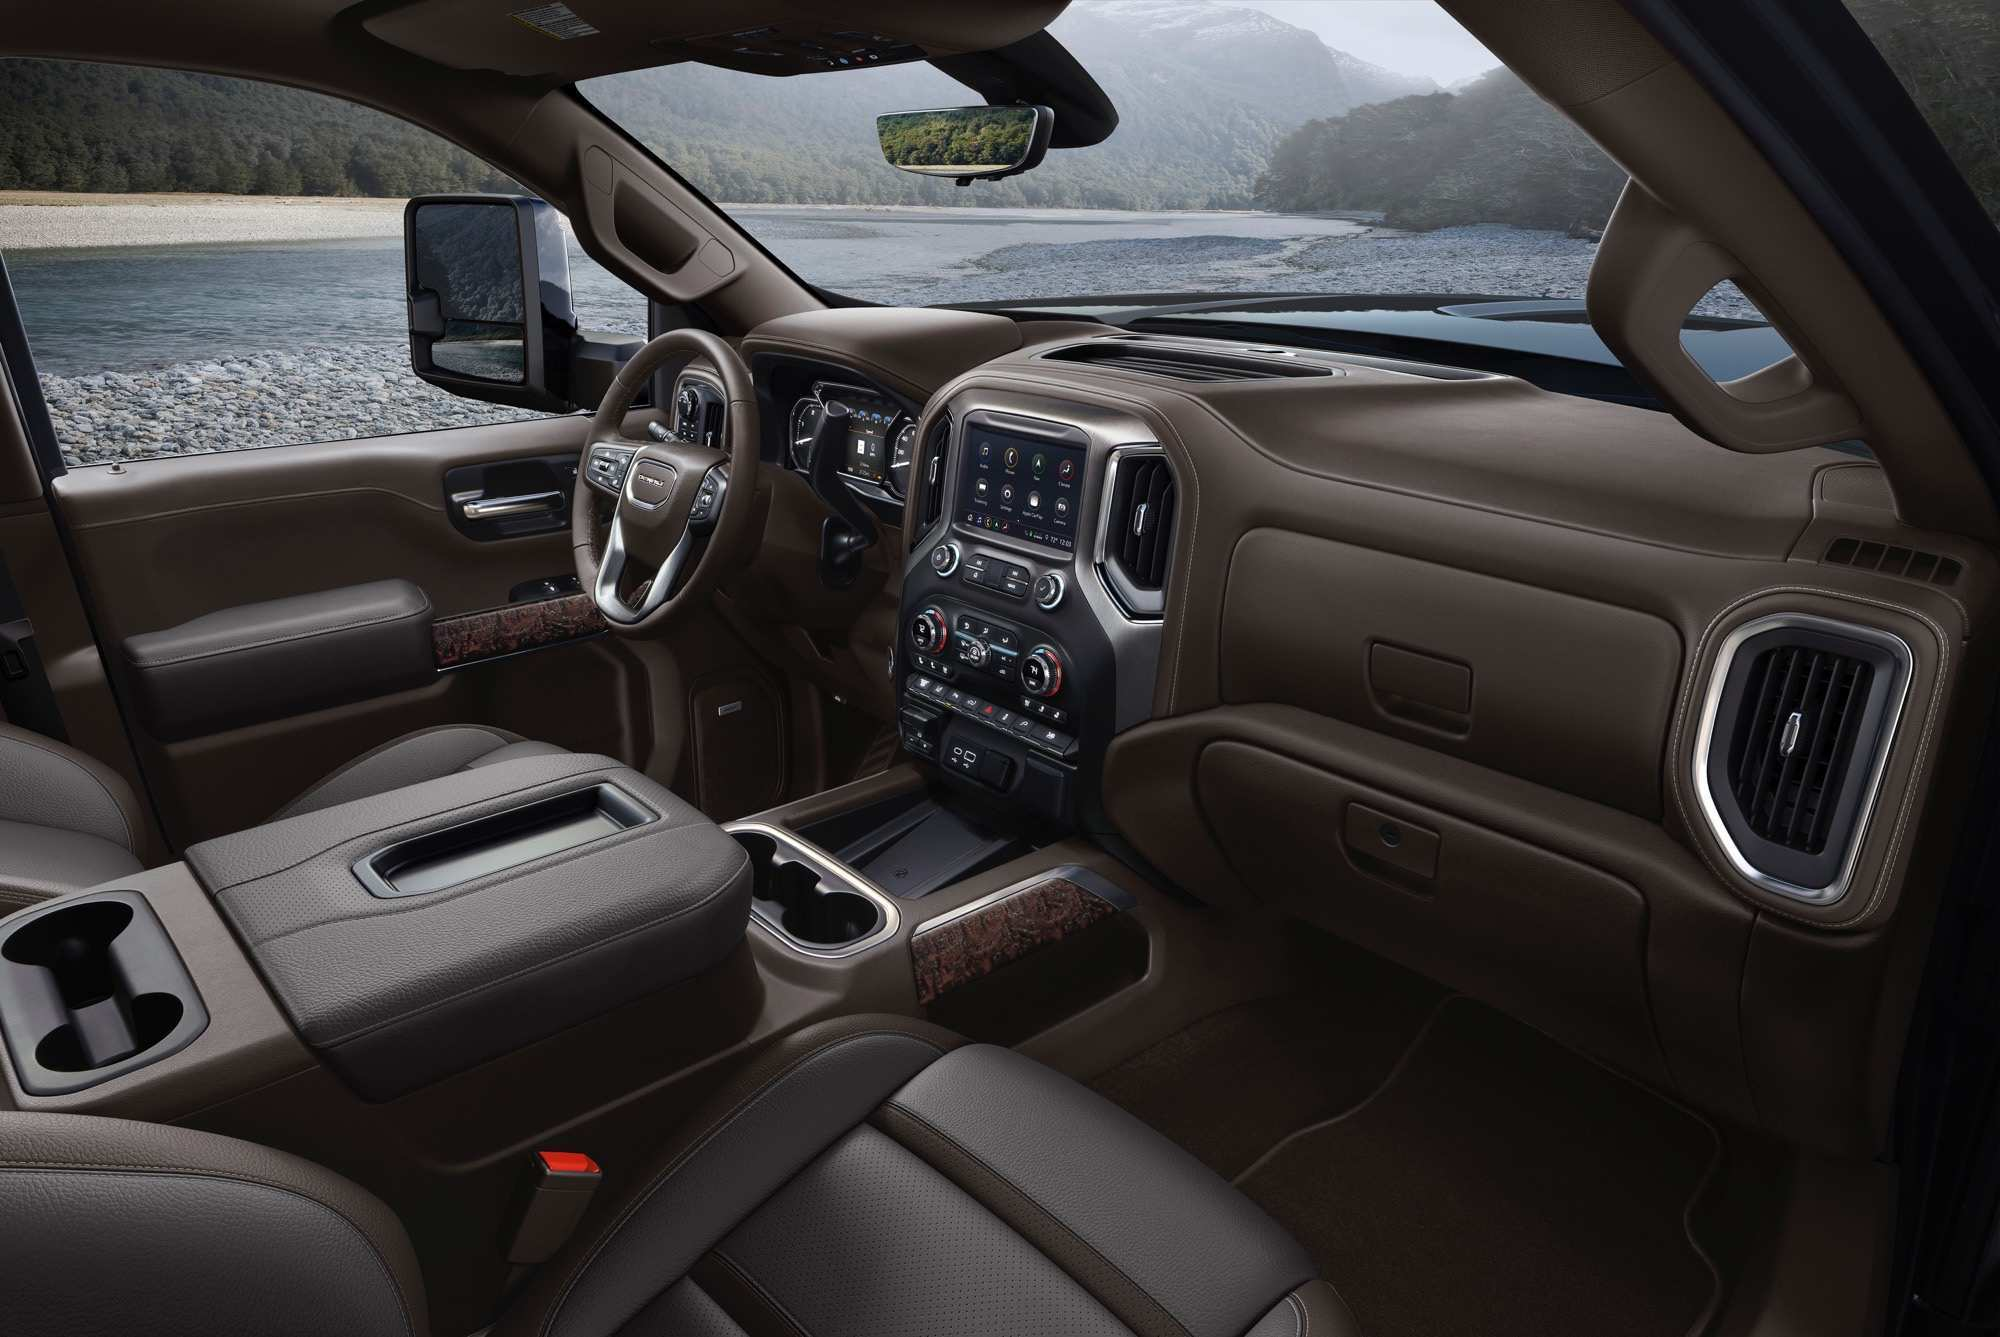 36 All New 2020 Gmc Sierra Denali Wallpaper with 2020 Gmc Sierra Denali